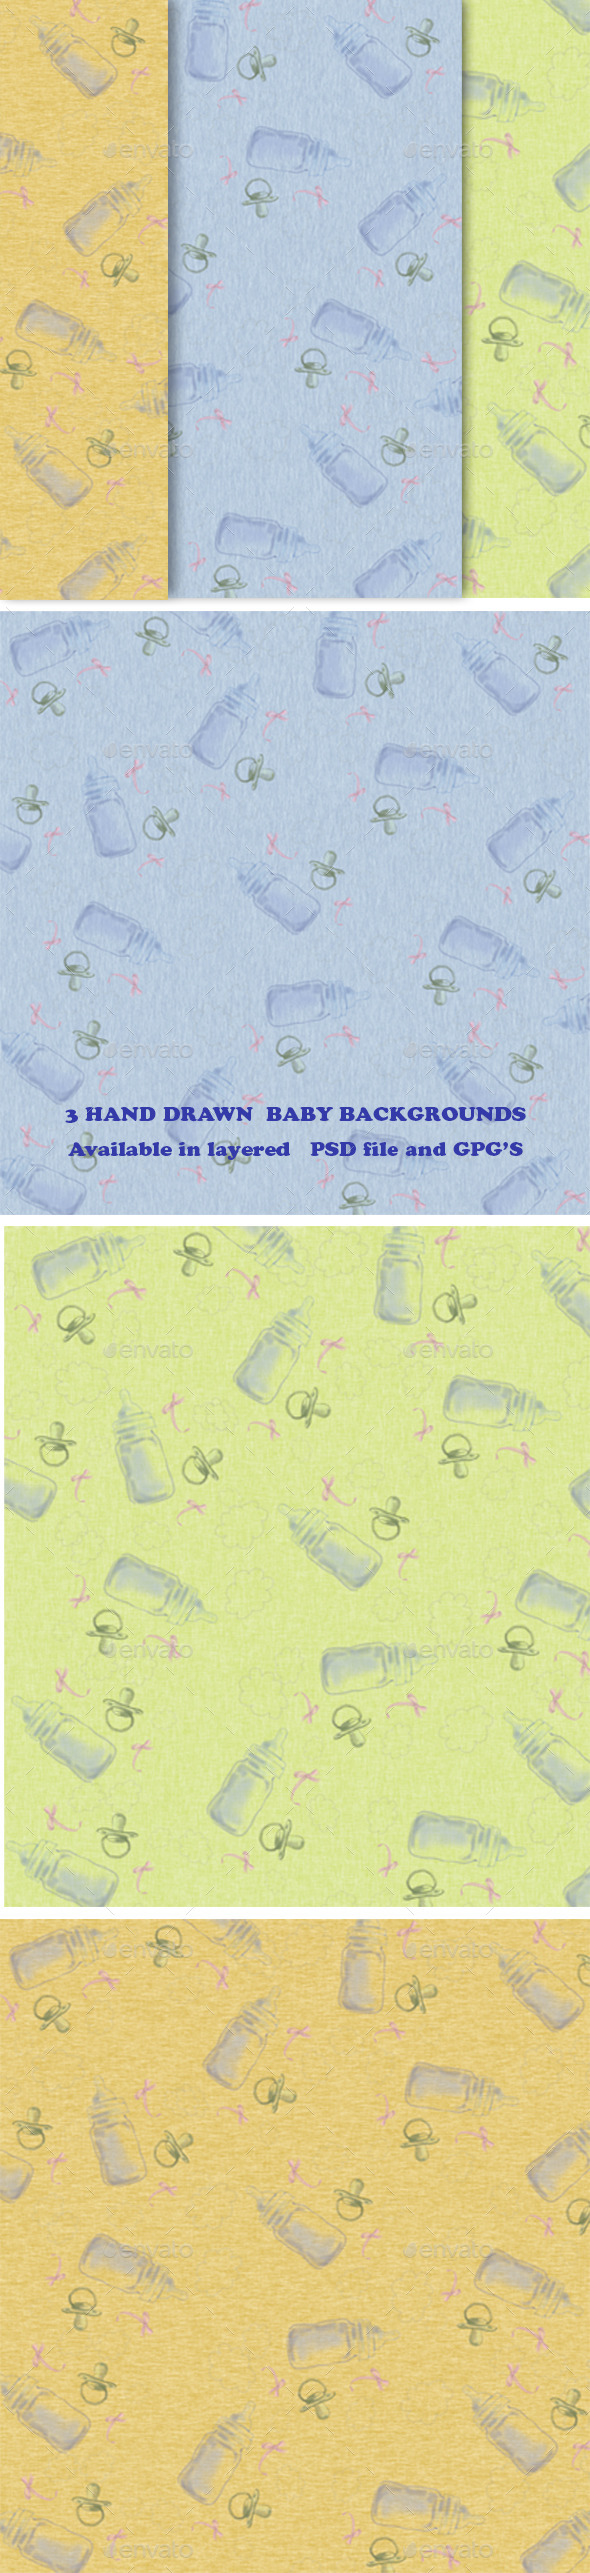 GraphicRiver Set of 3 Hand Drawen Baby Backgrounds 11557341